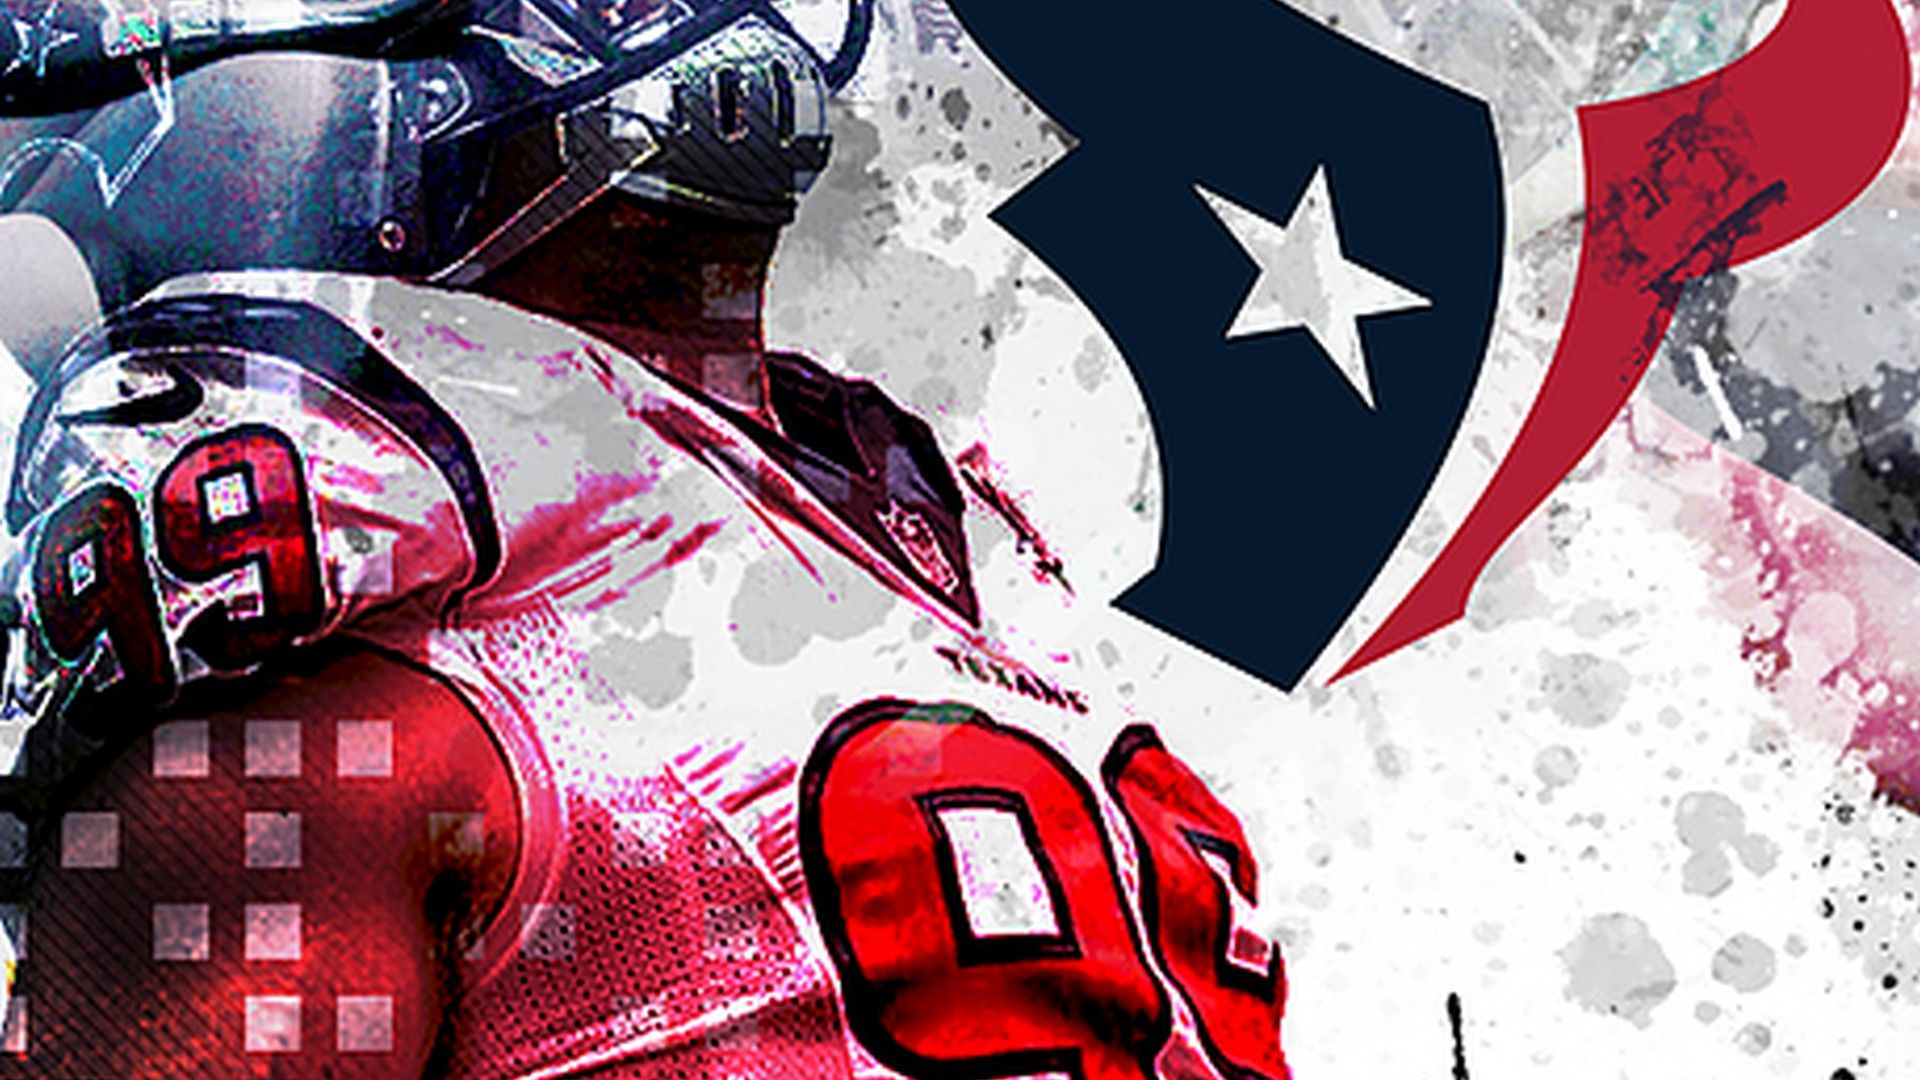 Houston Texans For Desktop Wallpaper Wallpapers Houston texans 1920x1080